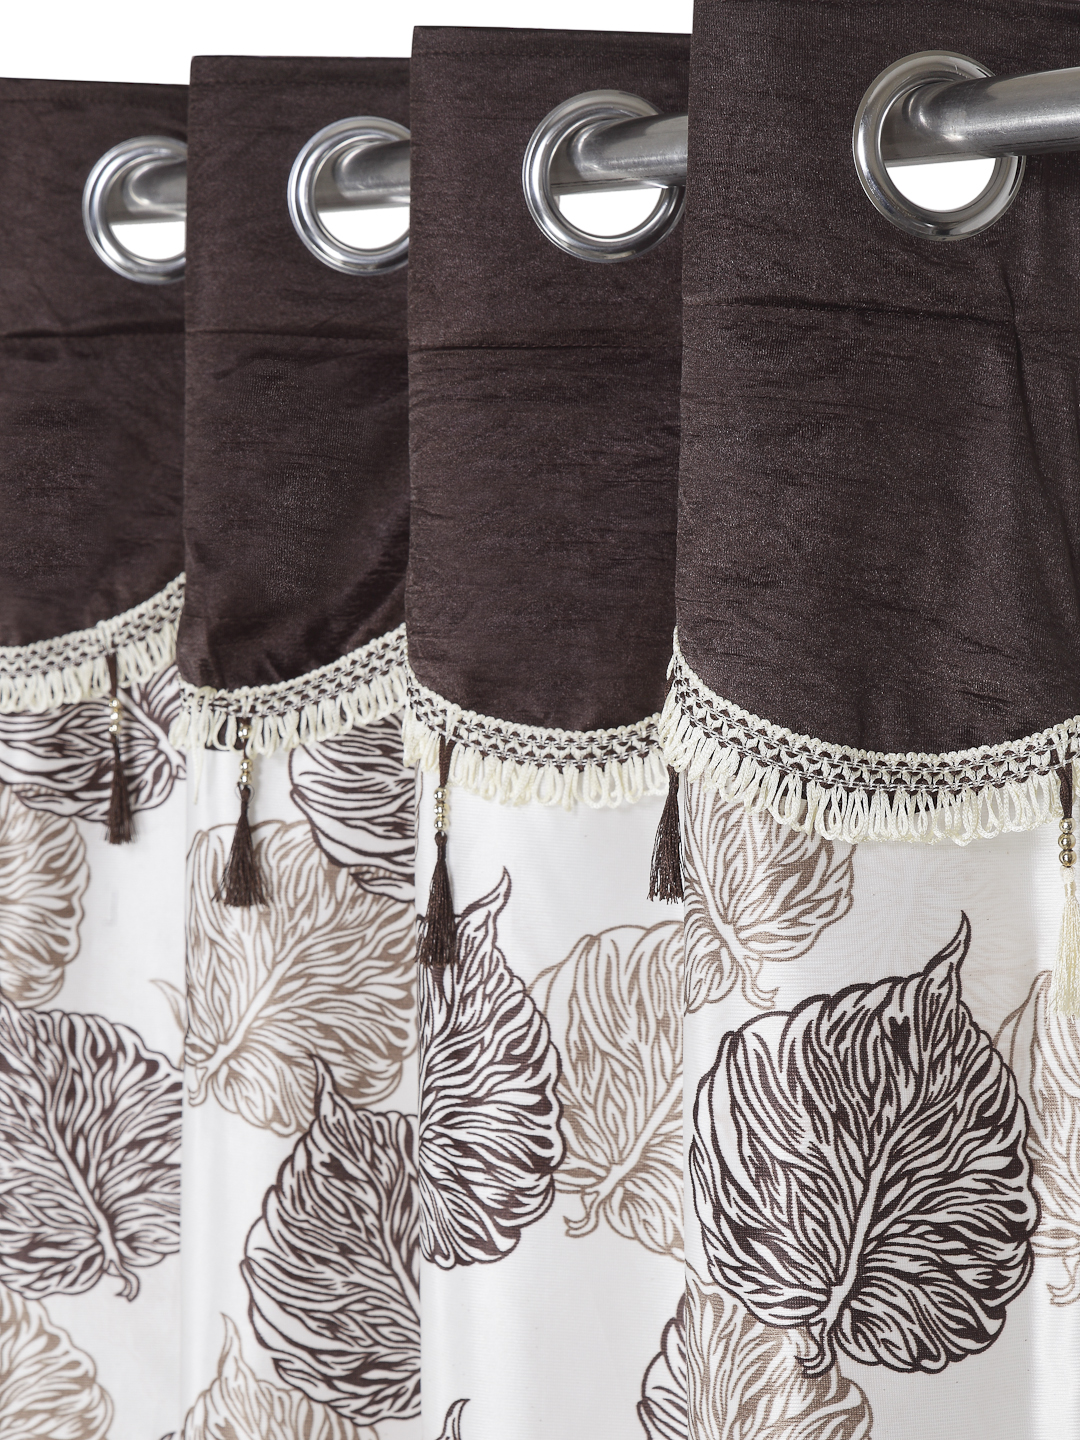 Cortina - Pack of 2 Decorative, Fancy, Eyelet Door Curtain set (210 x 115 cm), All over Leafy pattern, Brown, Fringe and tassle detail